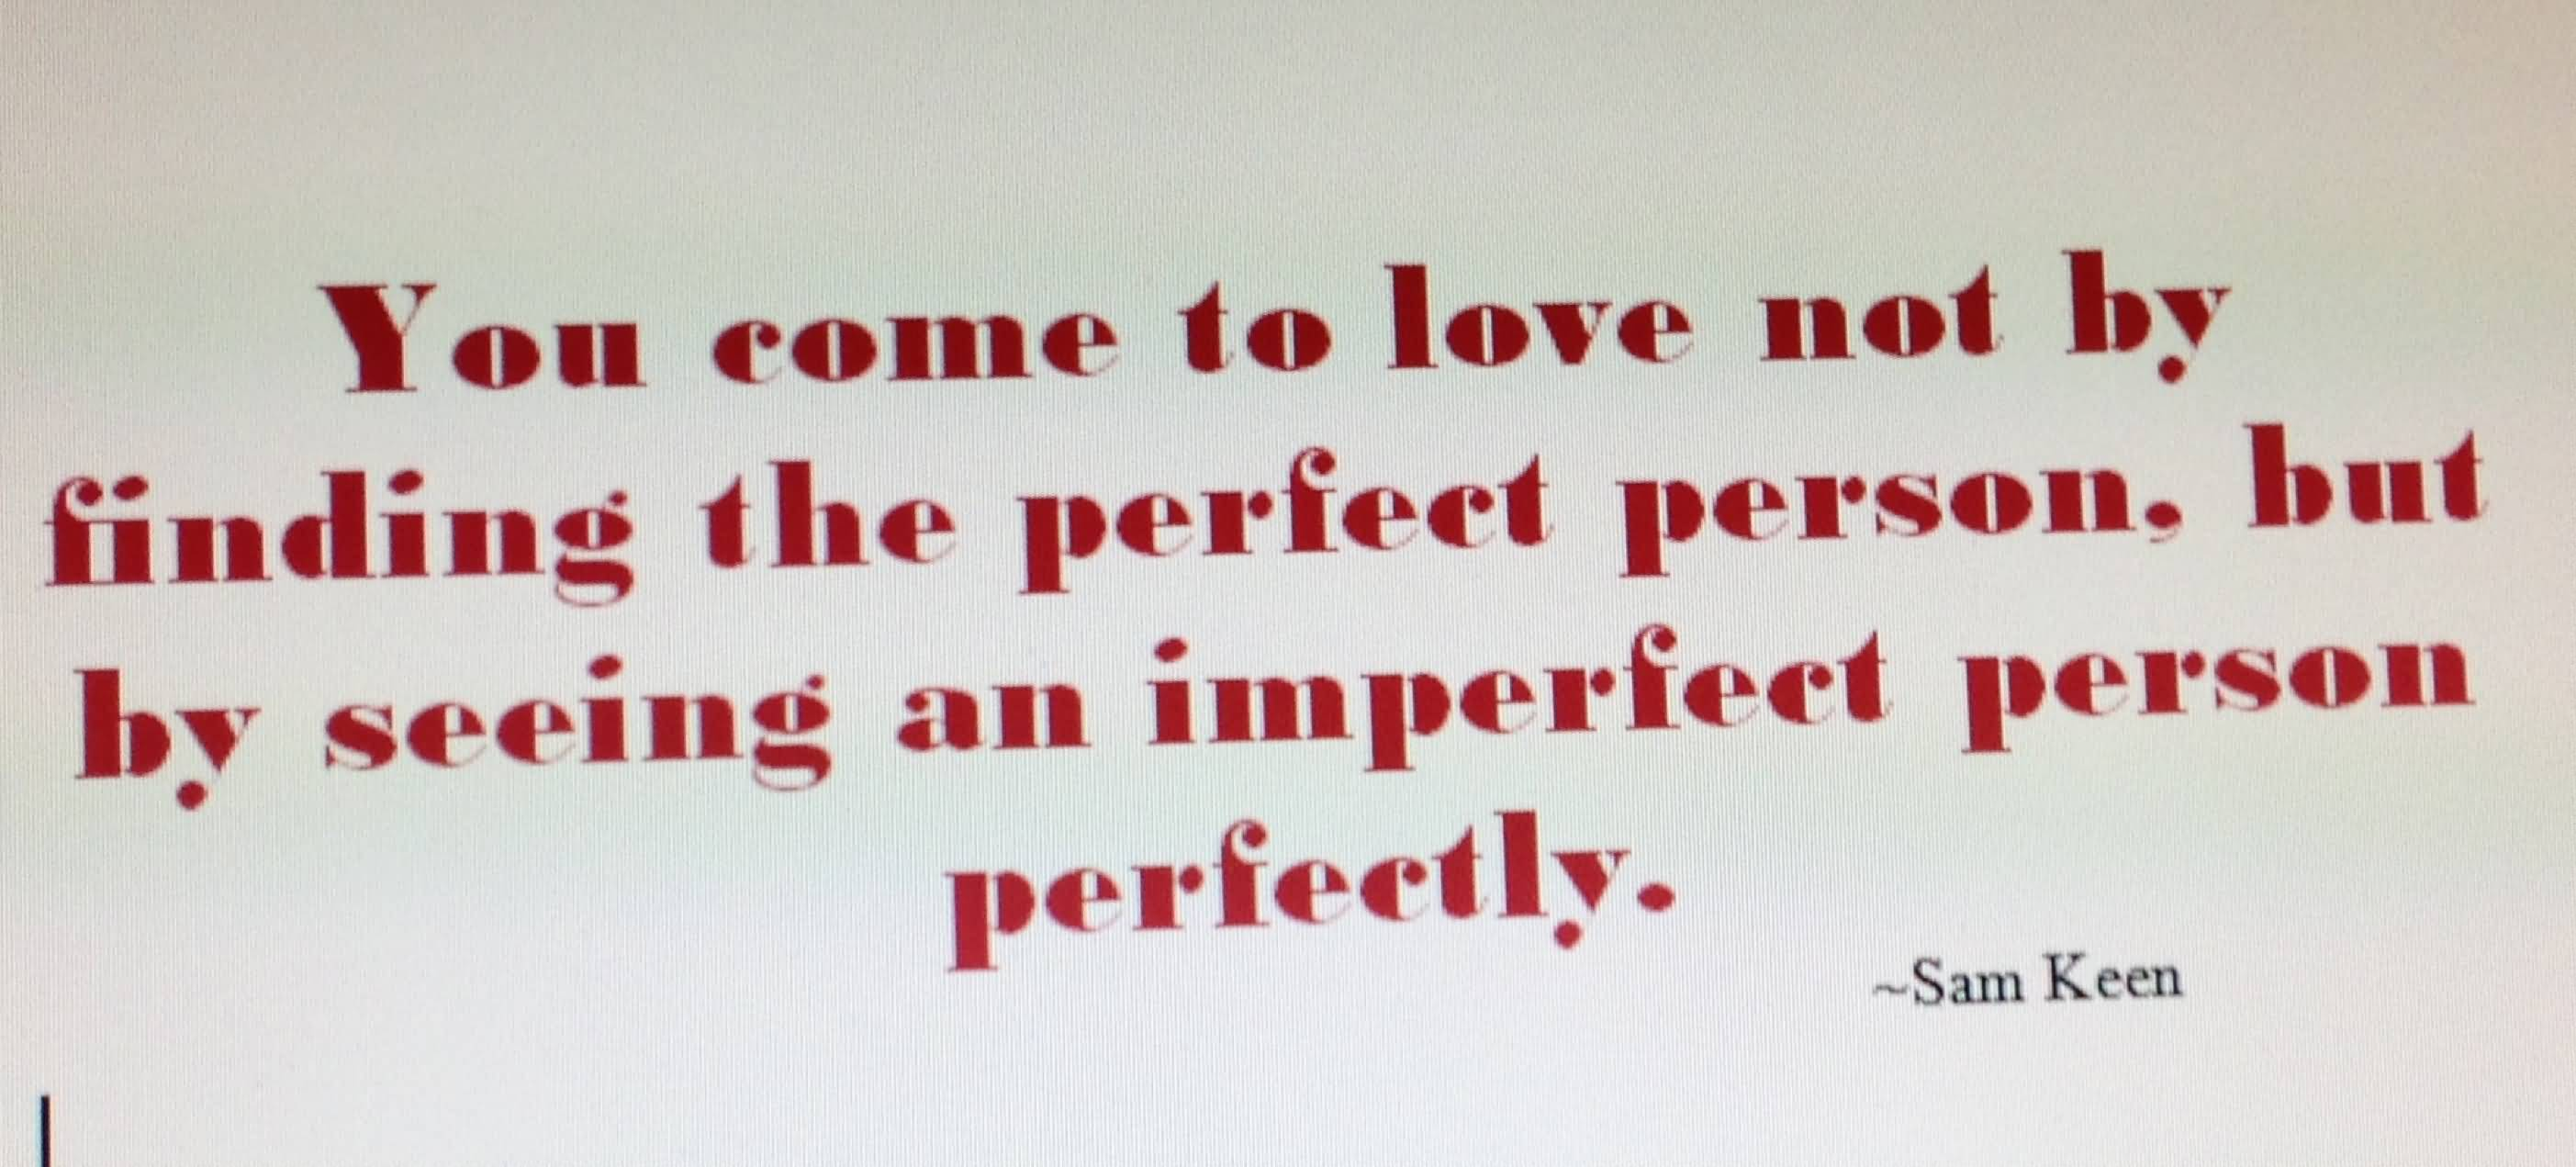 Imperfect Love Quotes Delectable Imperfect Love Quotes 10  Quotesbae